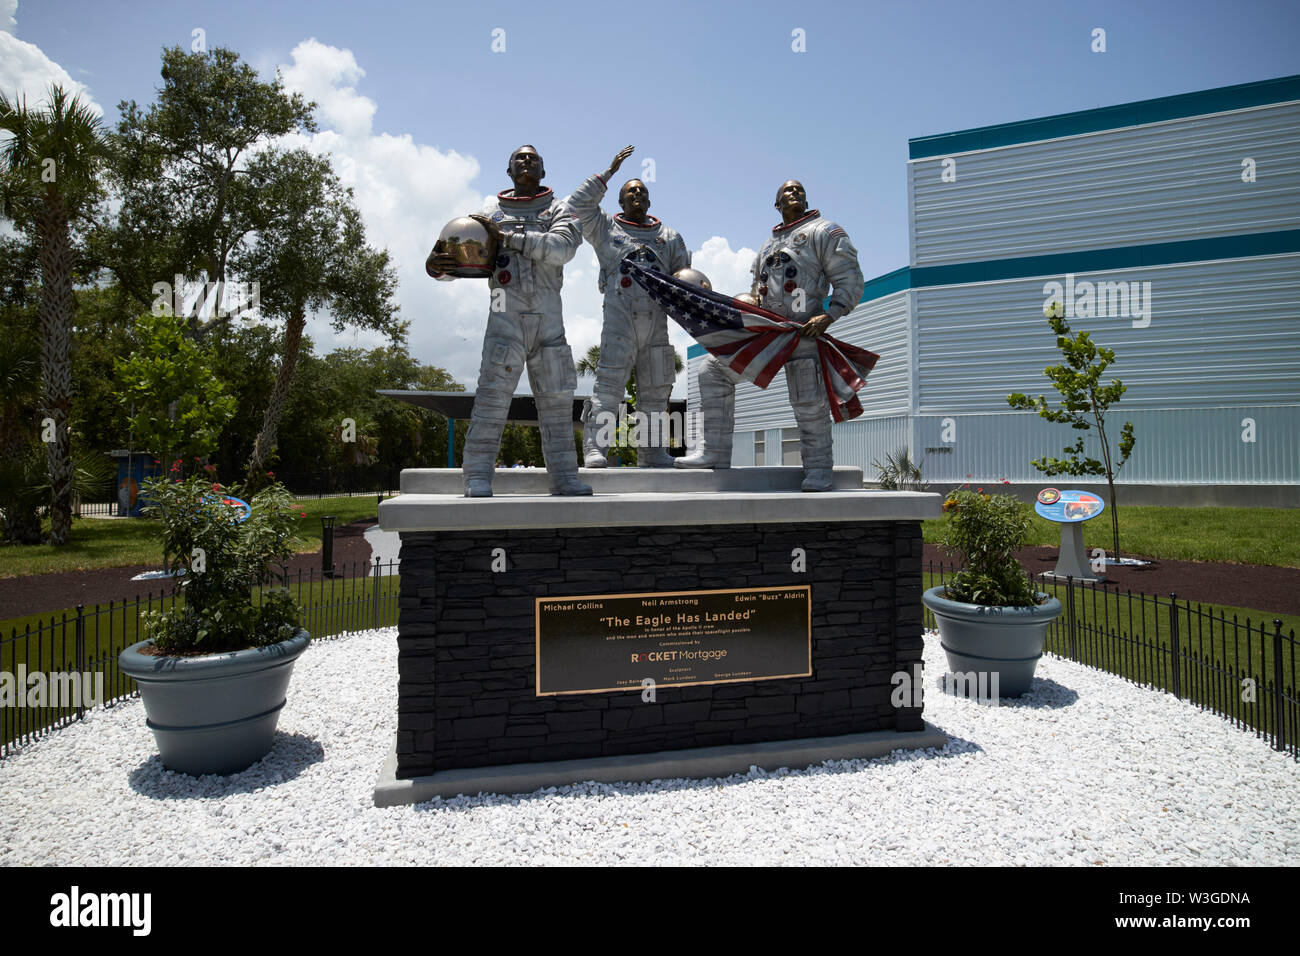 The eagle has landed sculpture of three astronauts in the new Moon Tree Garden in the Apollo/Saturn 5 center Kennedy Space Center Florida USA on the w - Stock Image